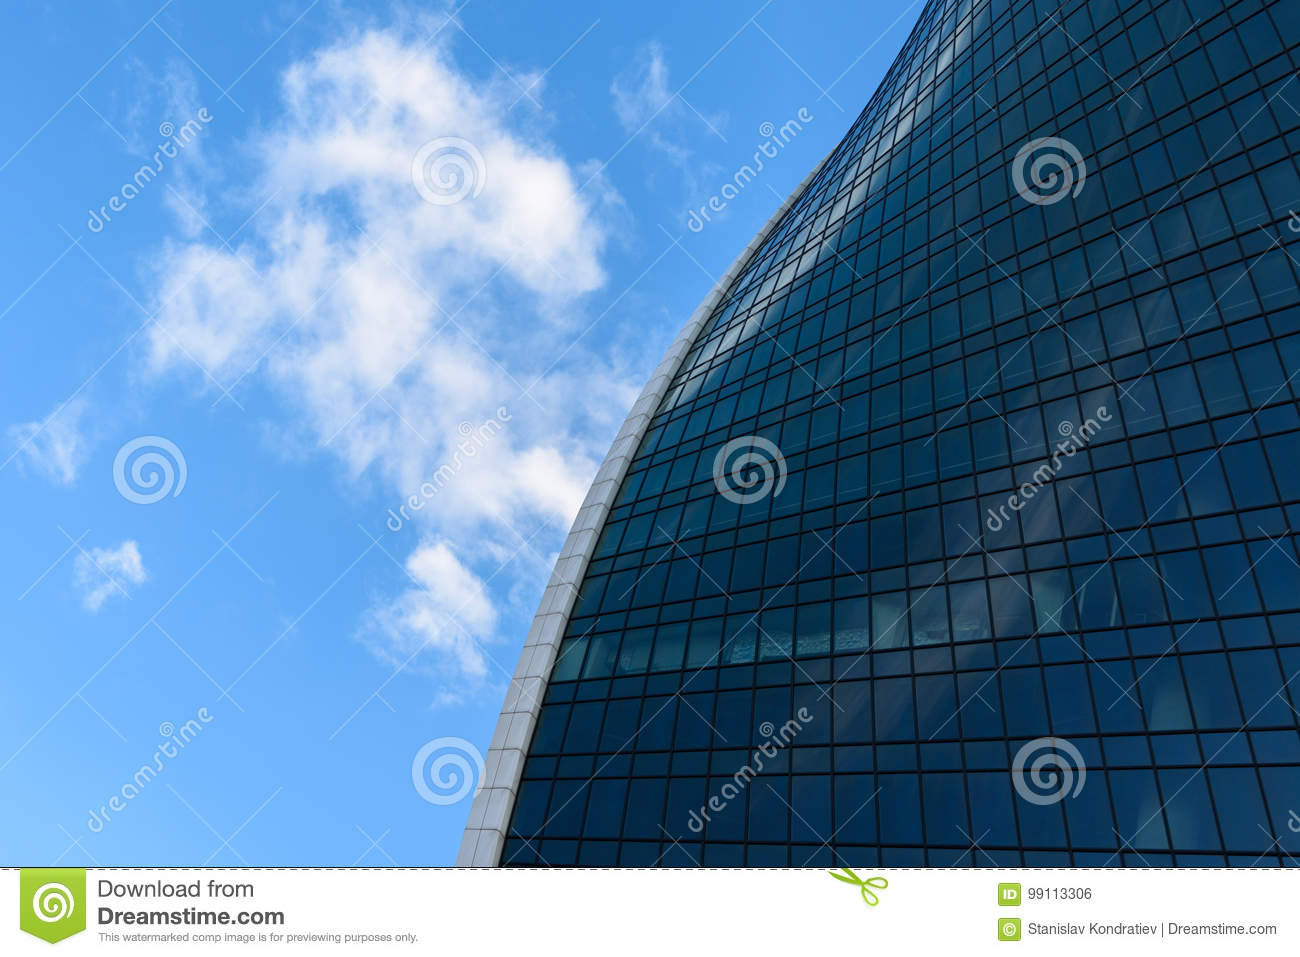 f8b348691cd Abstract Photo Of A Modern Glass Building Stock Photo - Image of ...